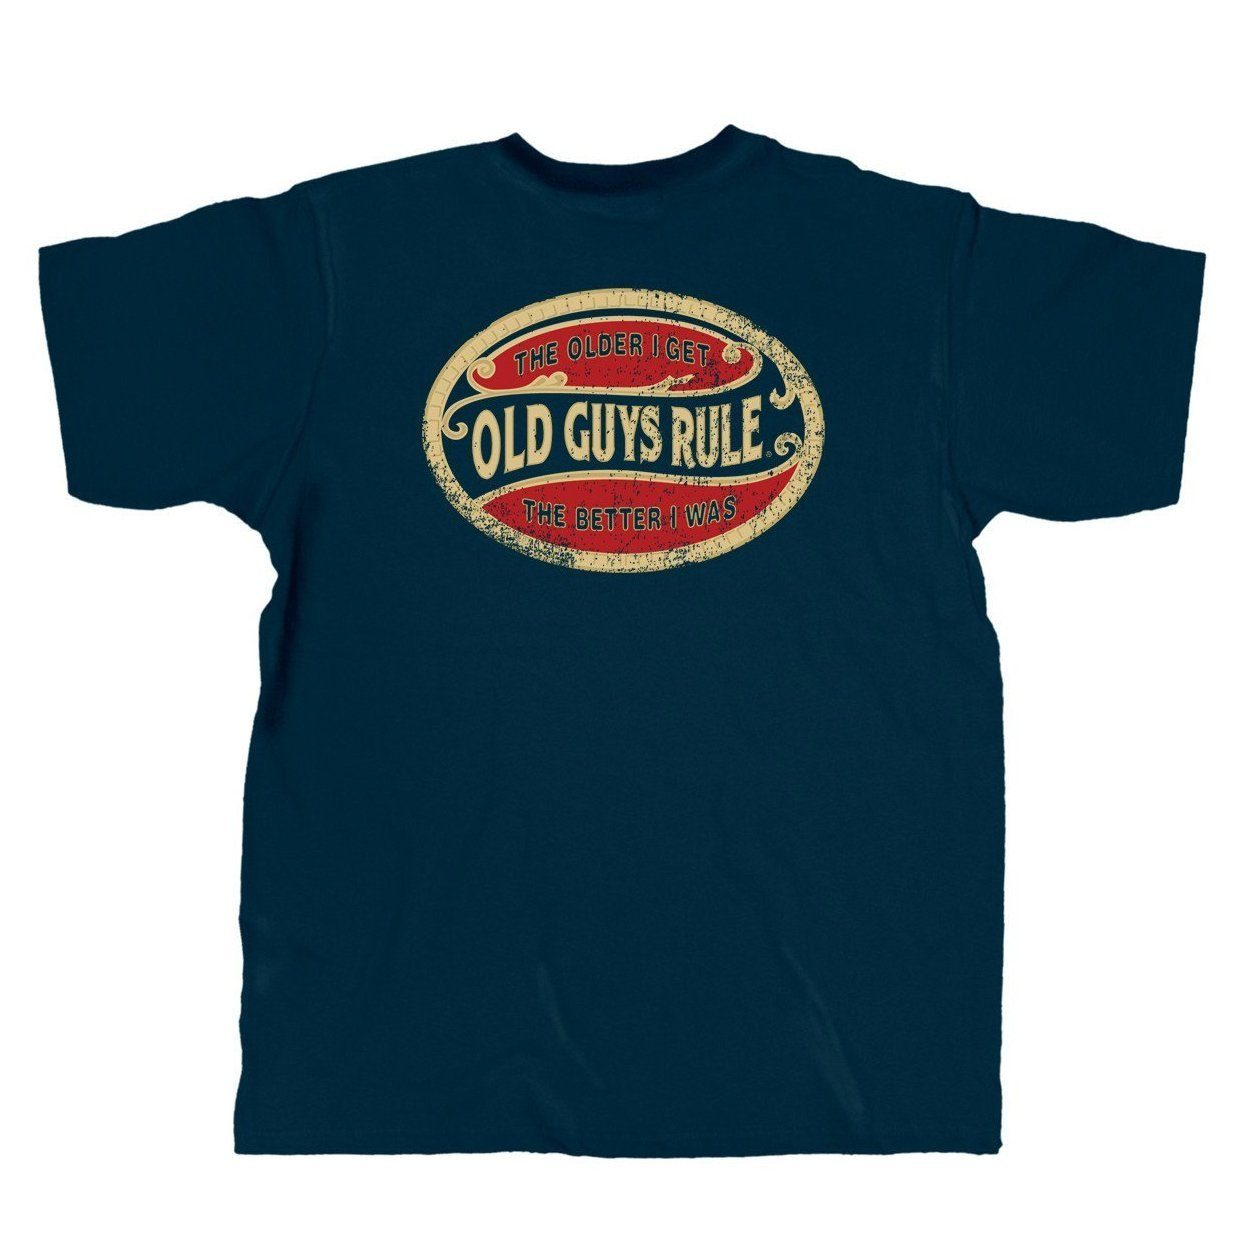 Old Guys Rule - The Older I Get... The Better I Was - Navy T-Shirt - Main View